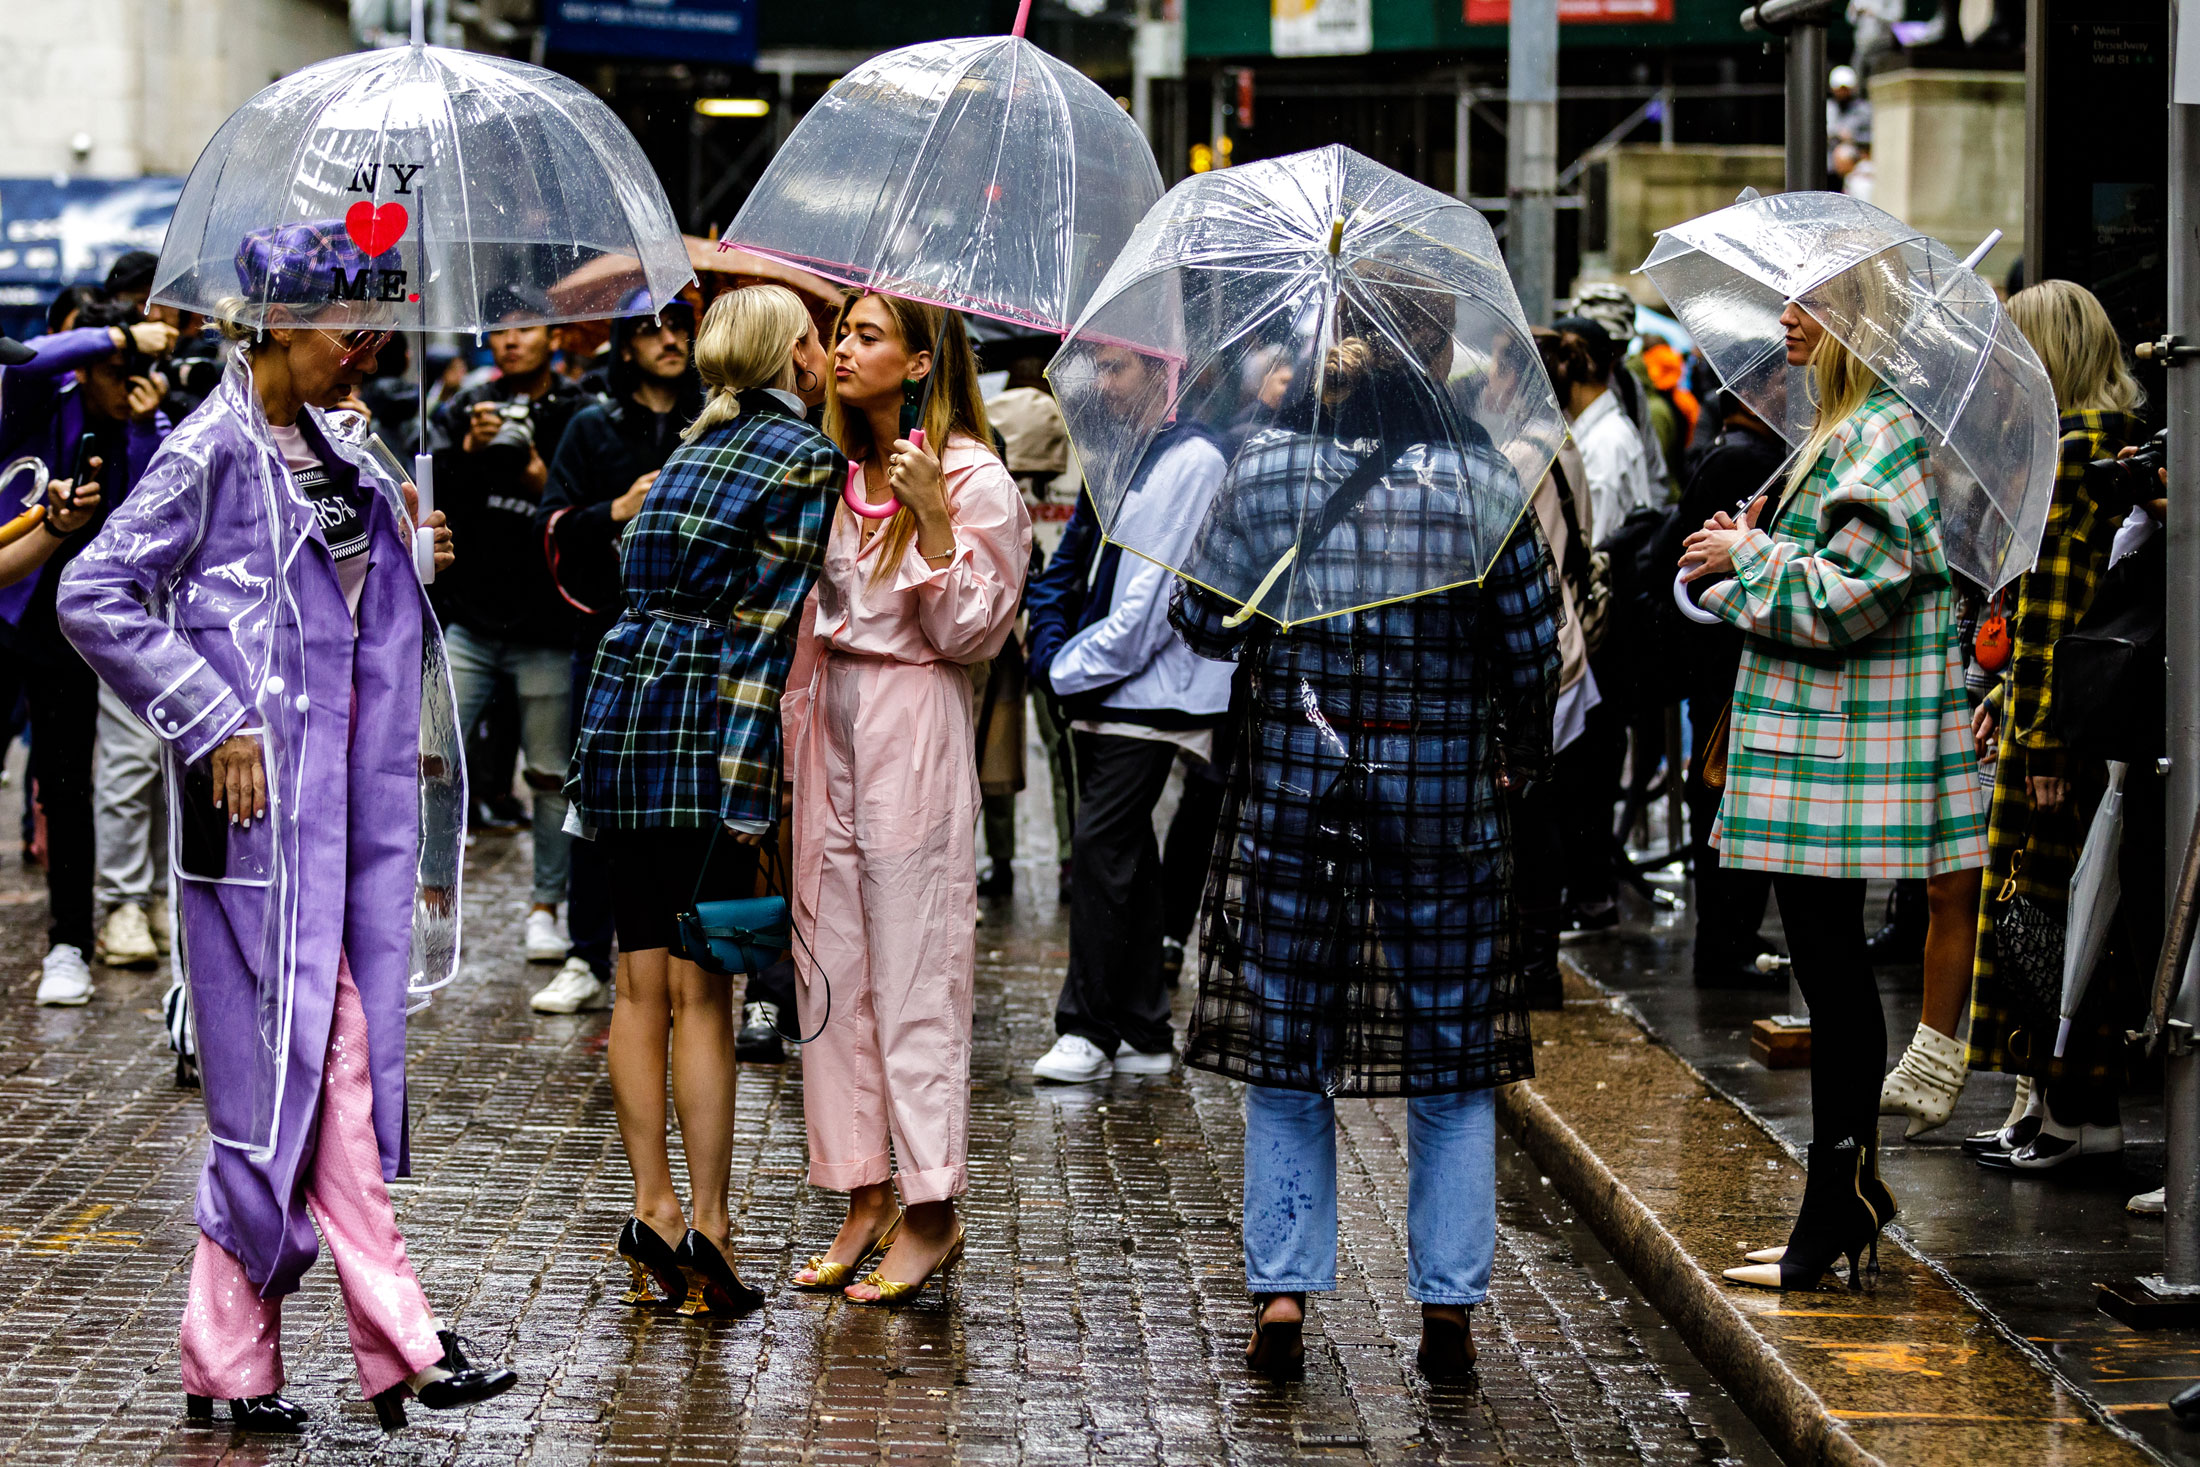 The Hottest Accessory at Fashion Week Is a $20 Umbrella